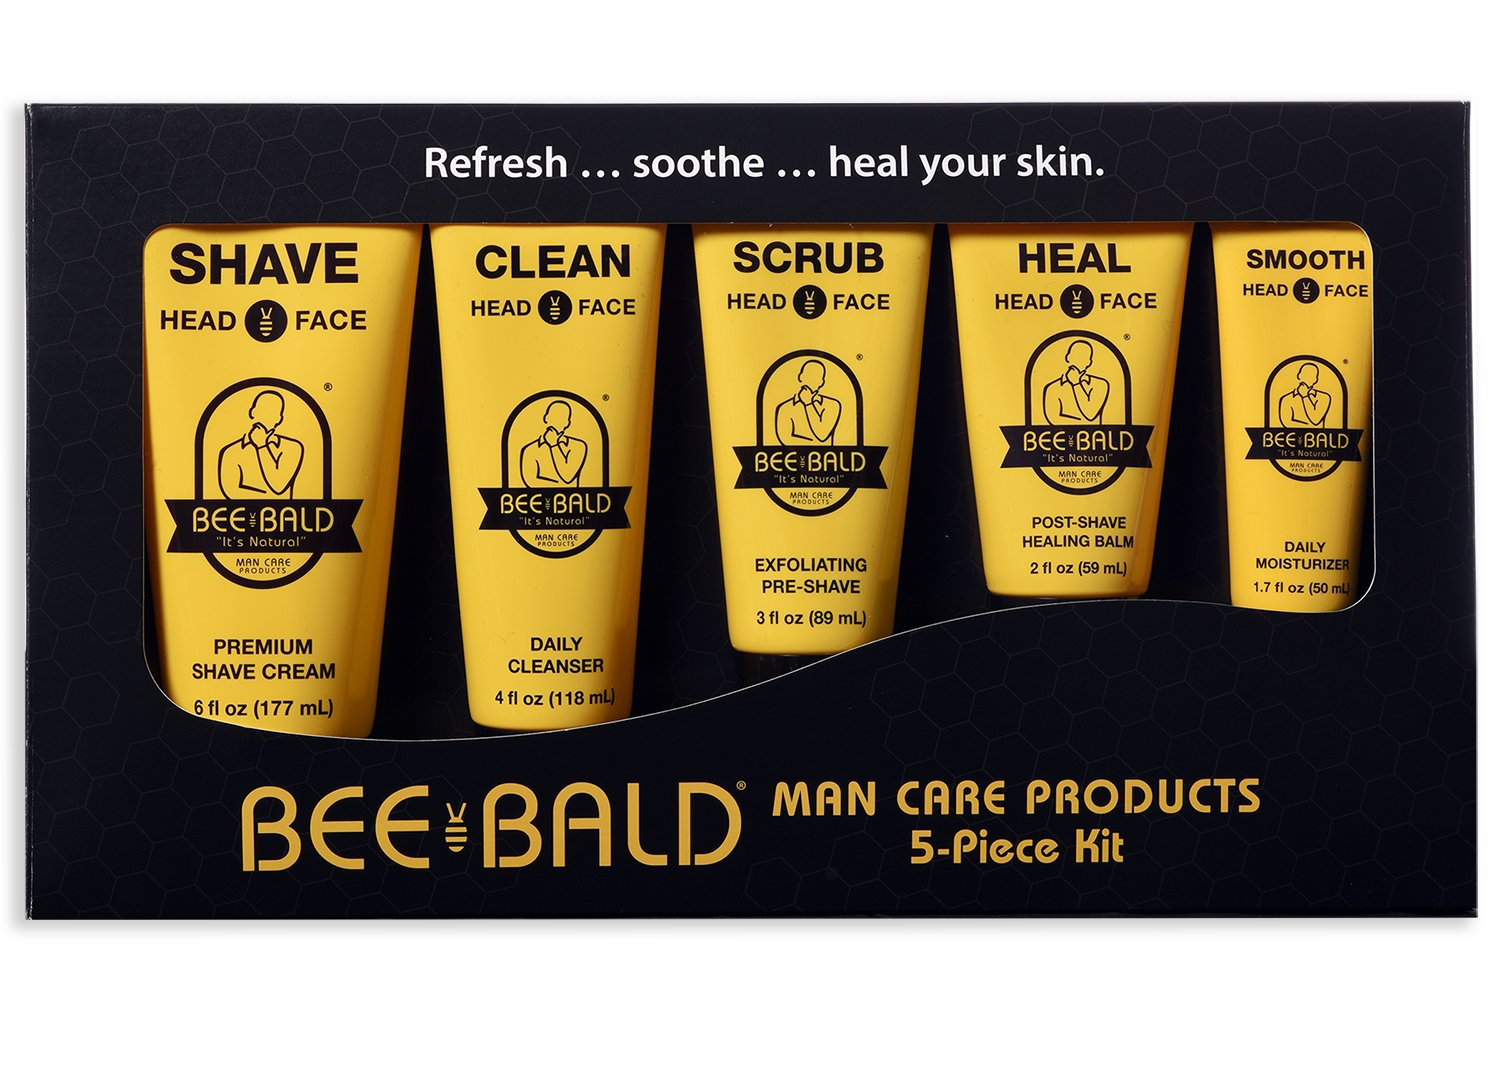 The company has created a diverse line of products to fill every need a bald guy could possibly think of. From every kind of blade to head creams to LOVE HEAD beanies, you can purchase products on their website and then learn how to shave and care for your bald head by viewing their educational videos.